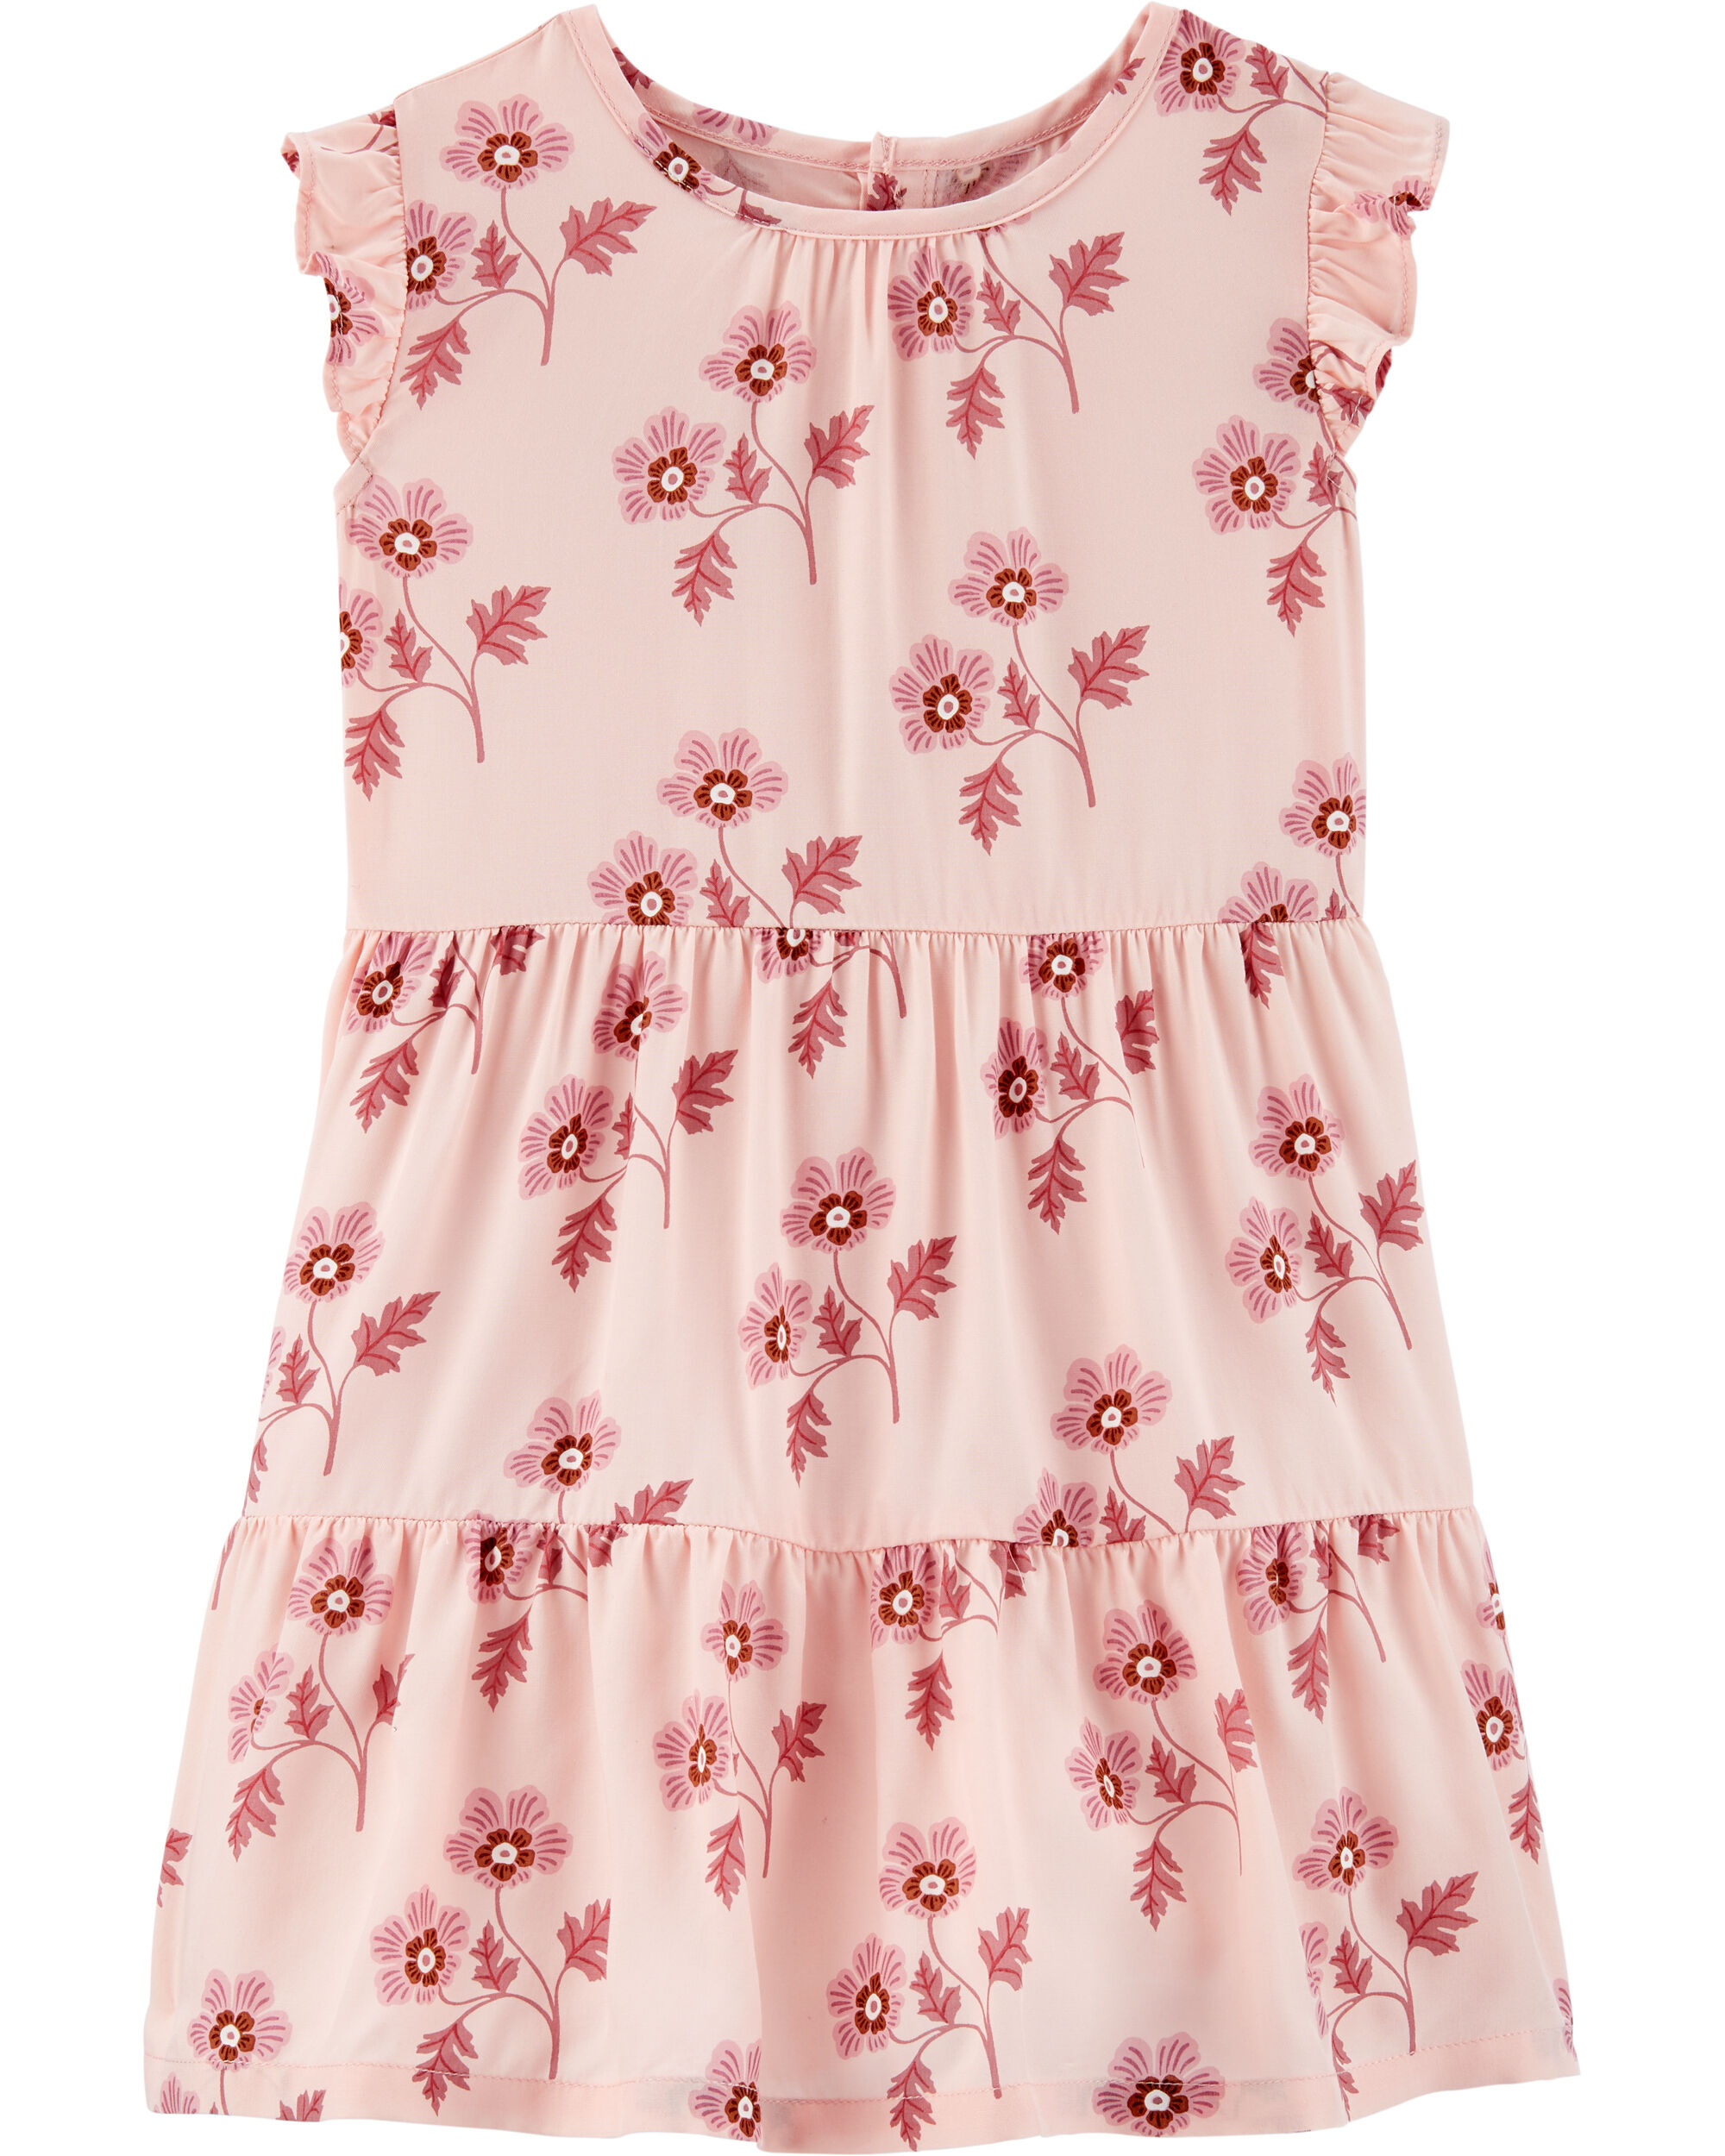 *CLEARANCE* Floral Tiered Dress